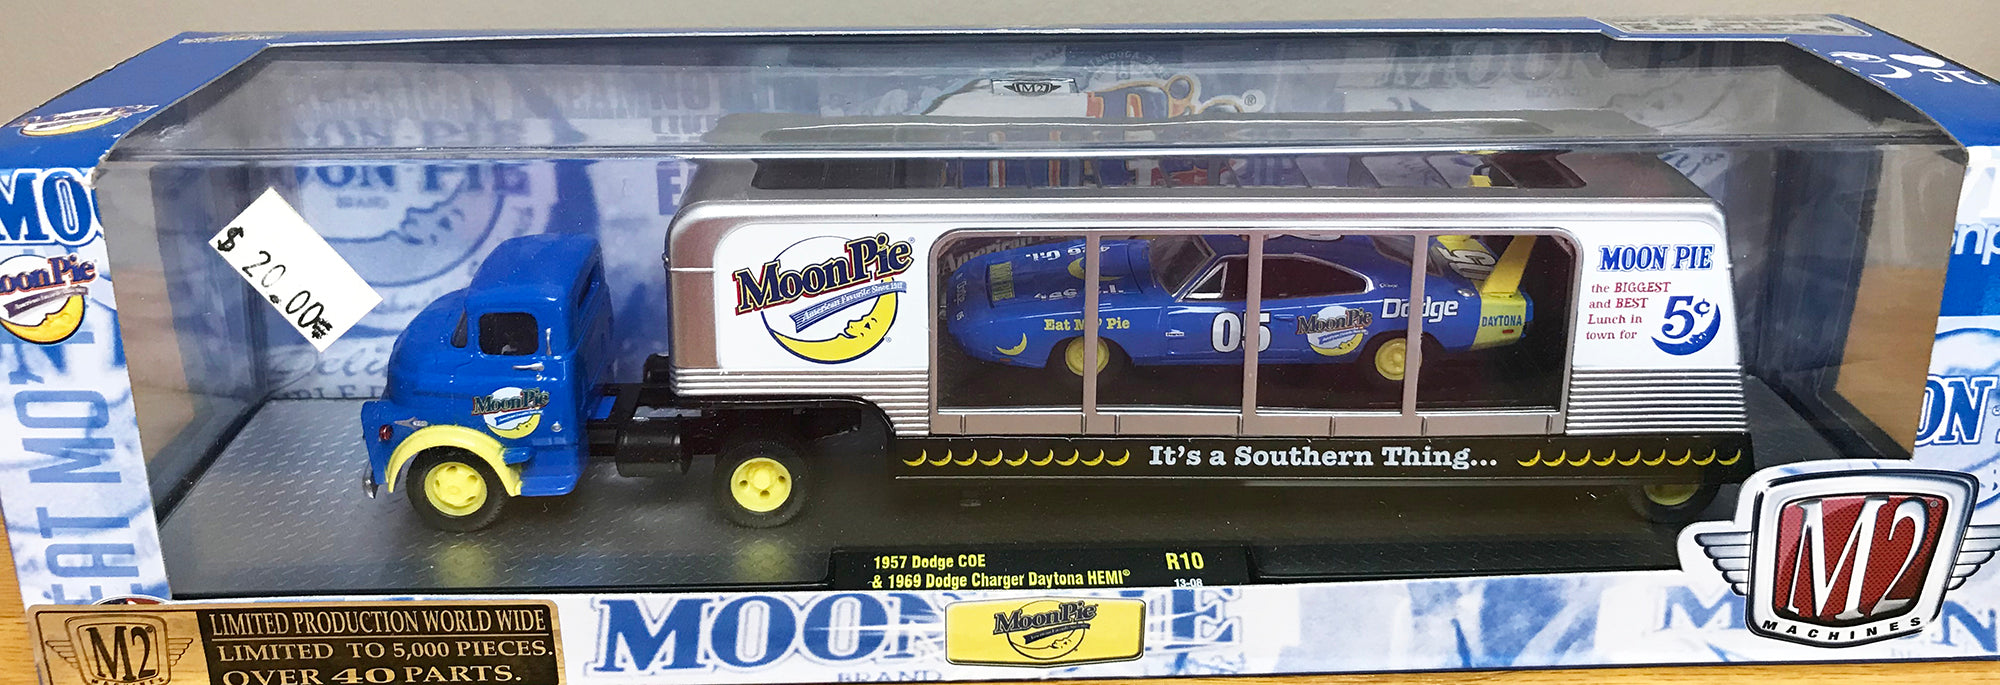 S 1956 Ford Semi w/Auto Trailer - Moon Pie